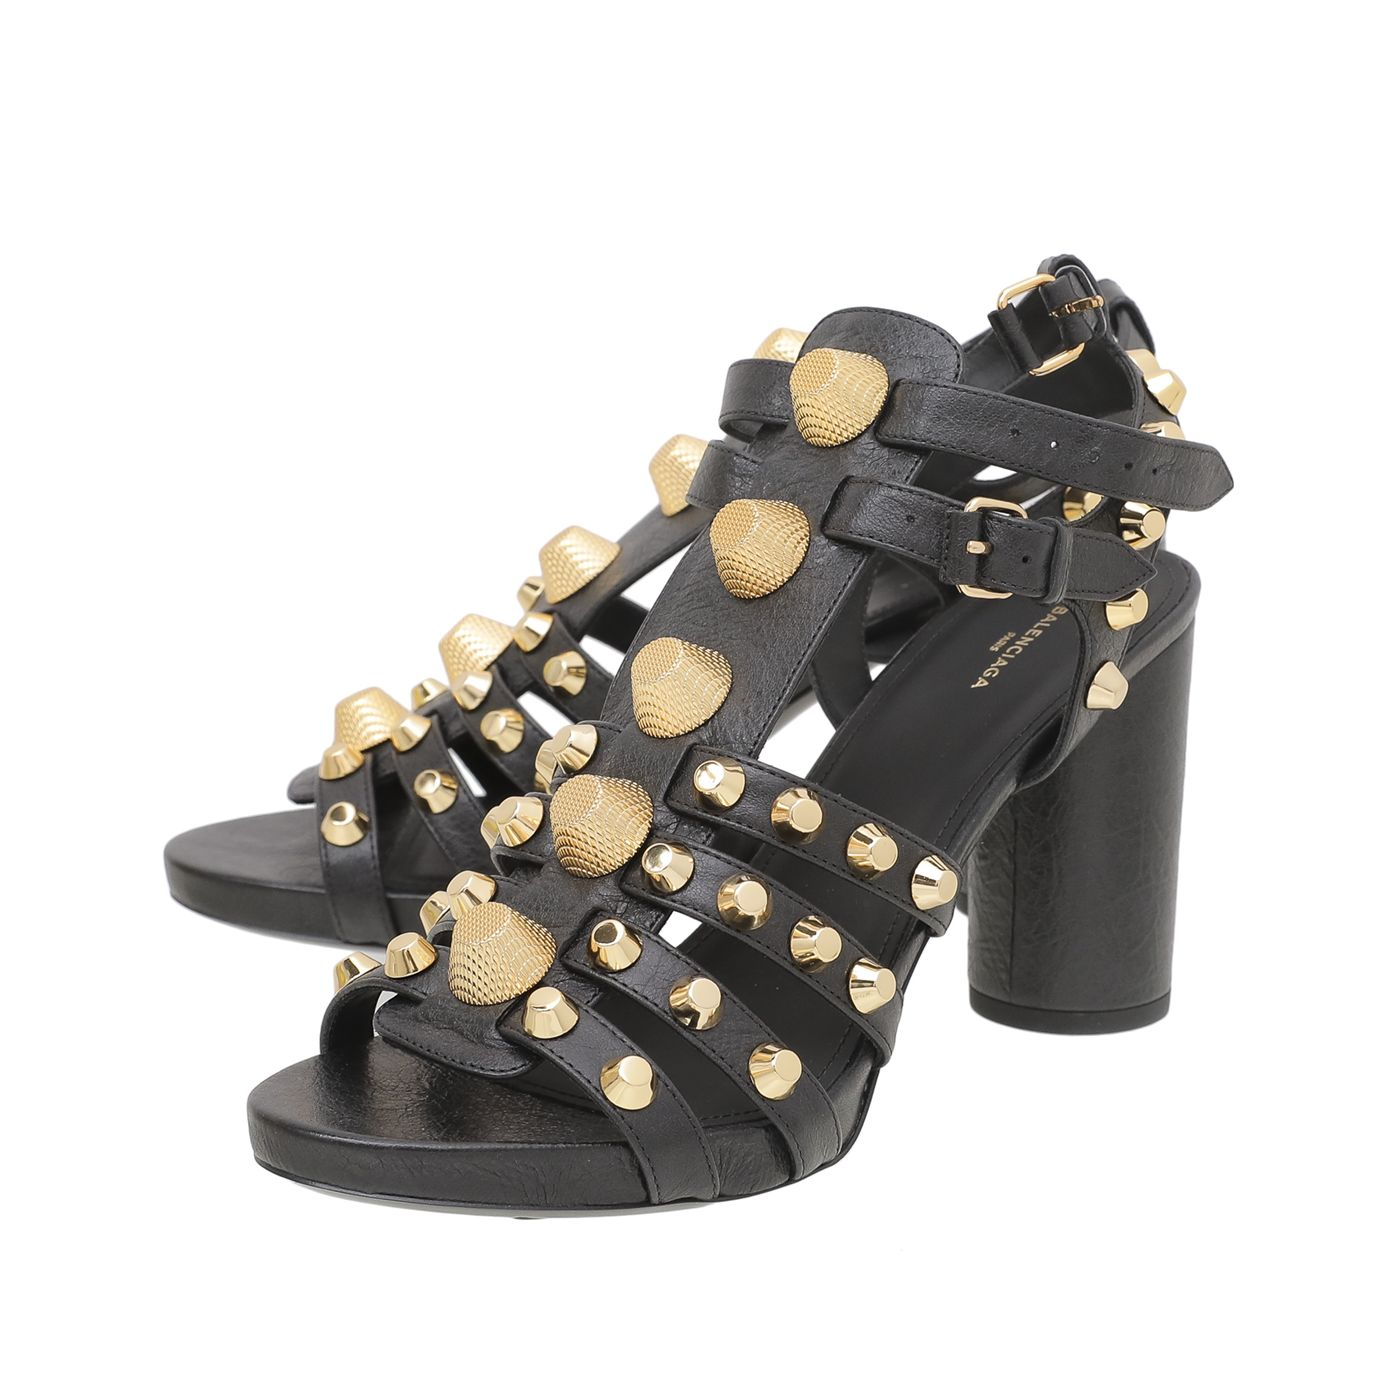 Balenciaga Black Giant Studded Gladiator Sandals 40